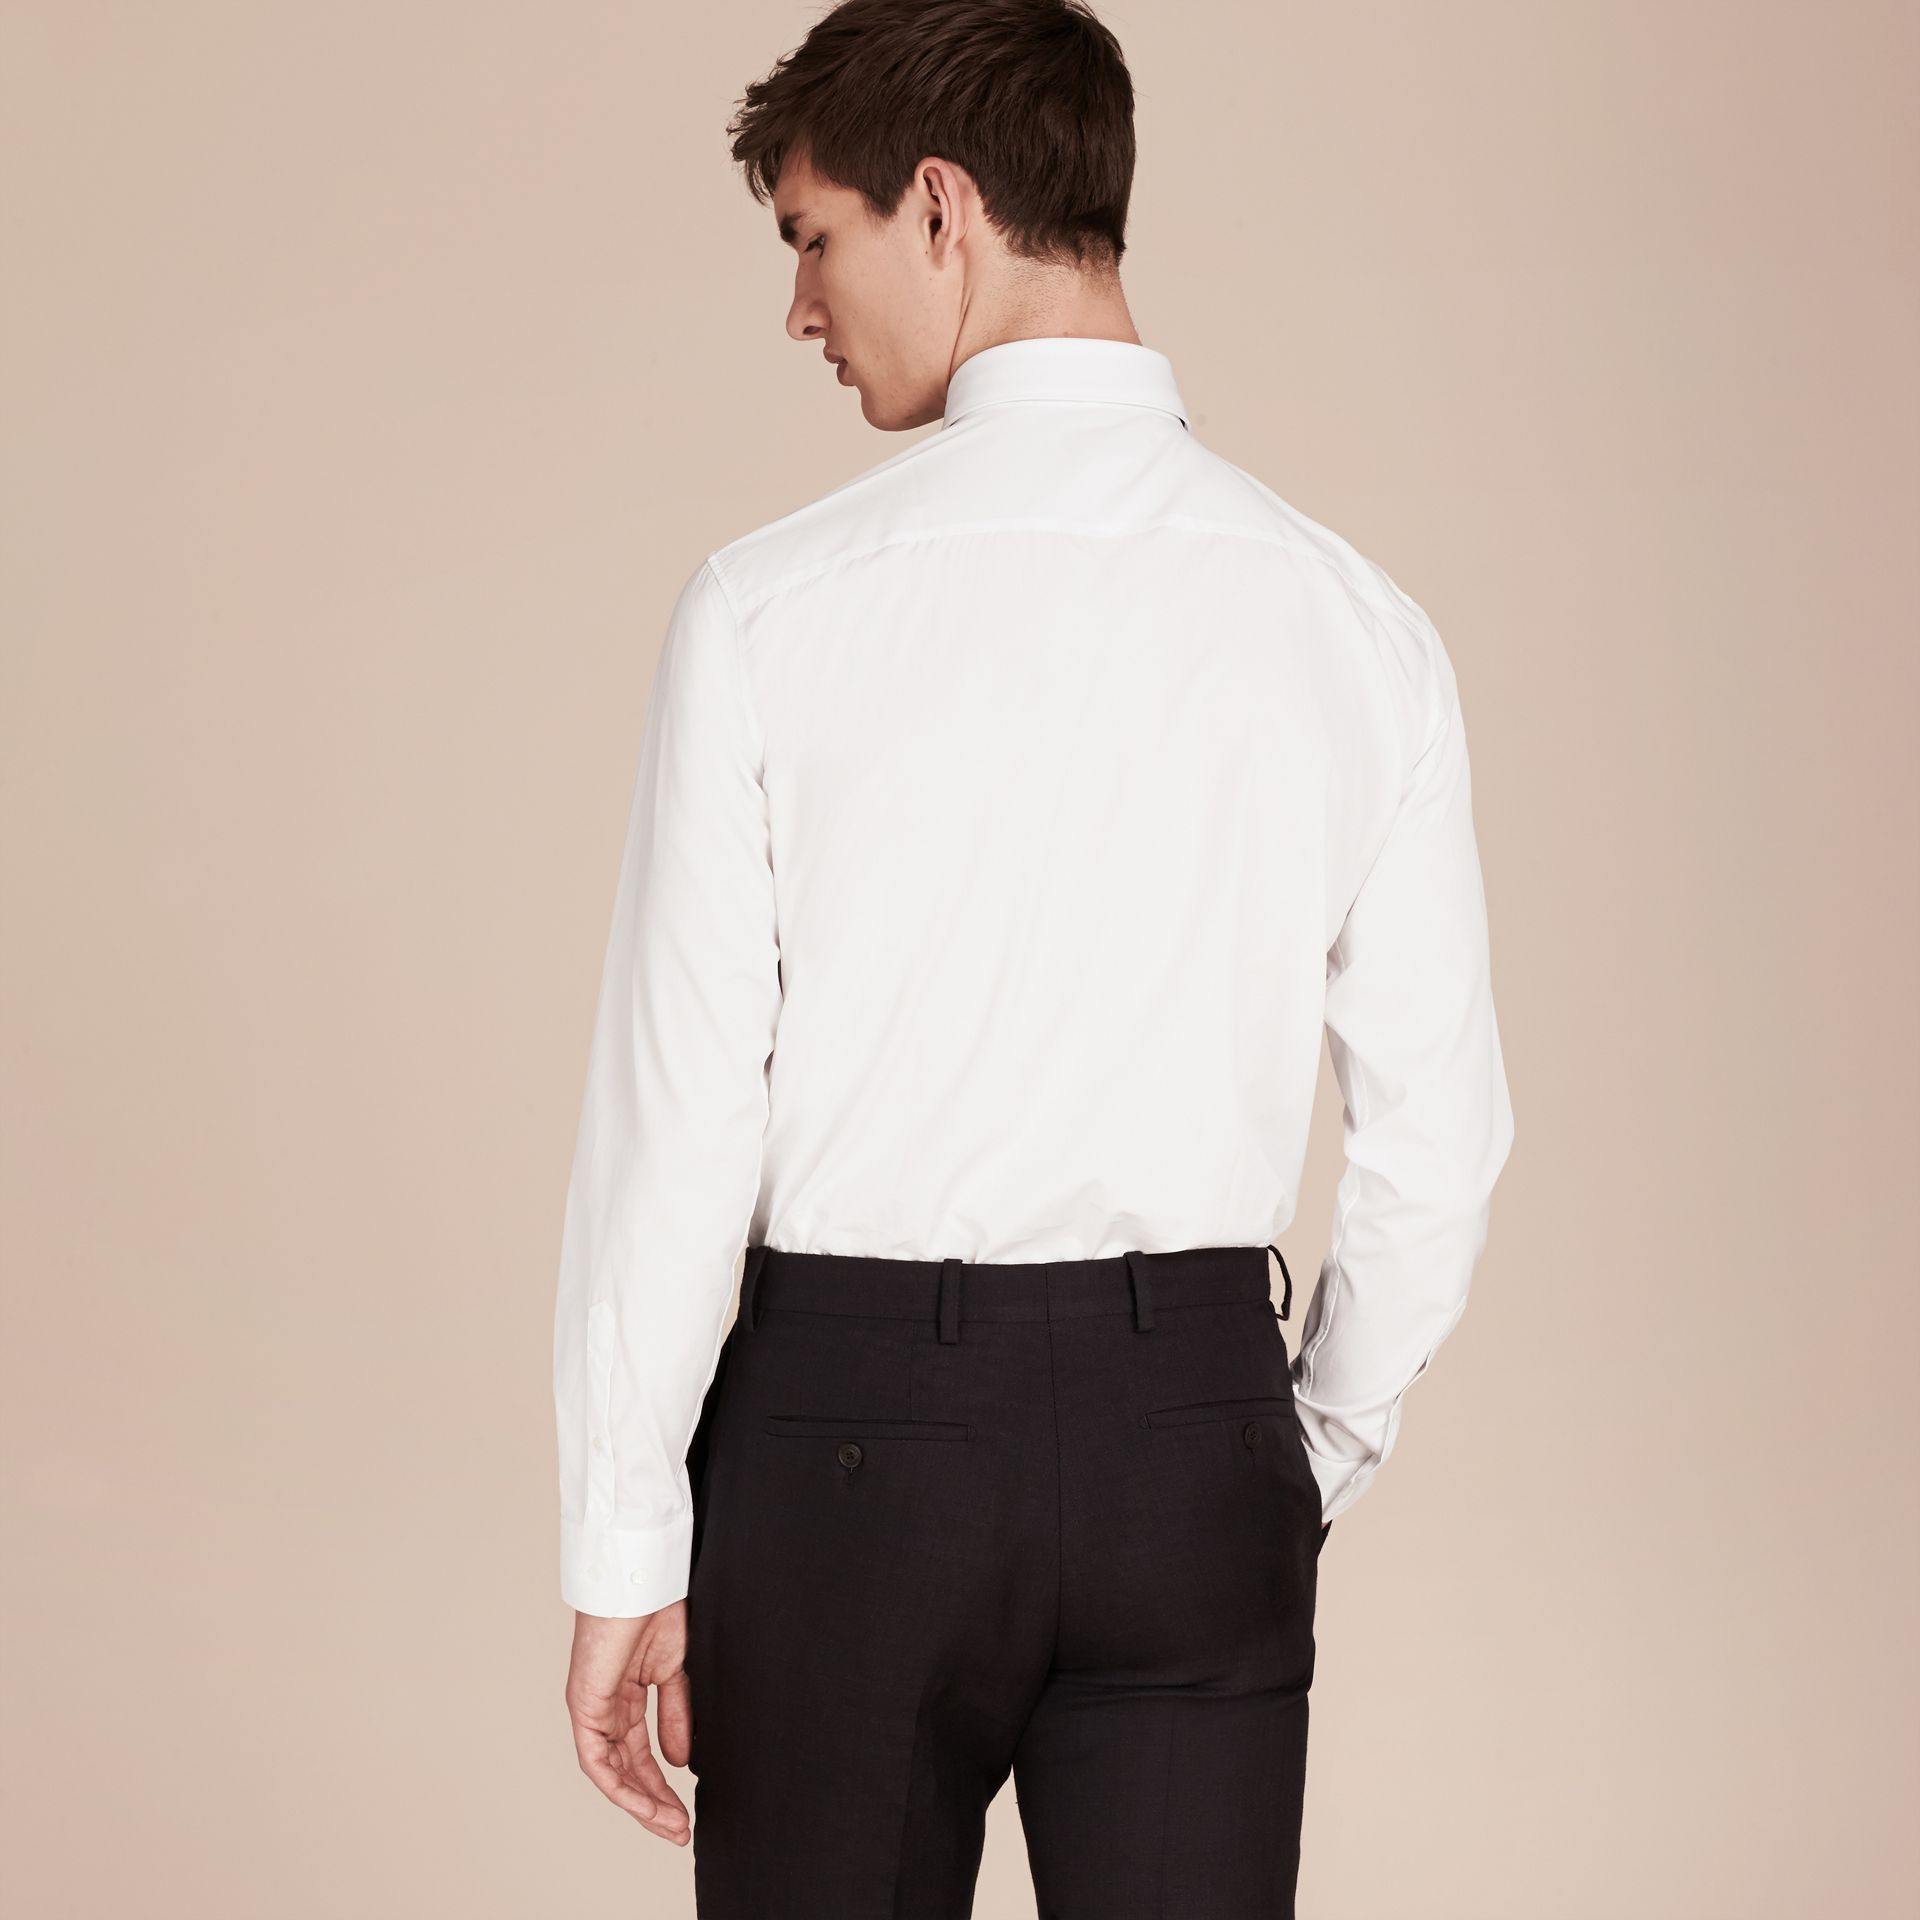 White Modern Fit Cotton Poplin Shirt White - gallery image 3